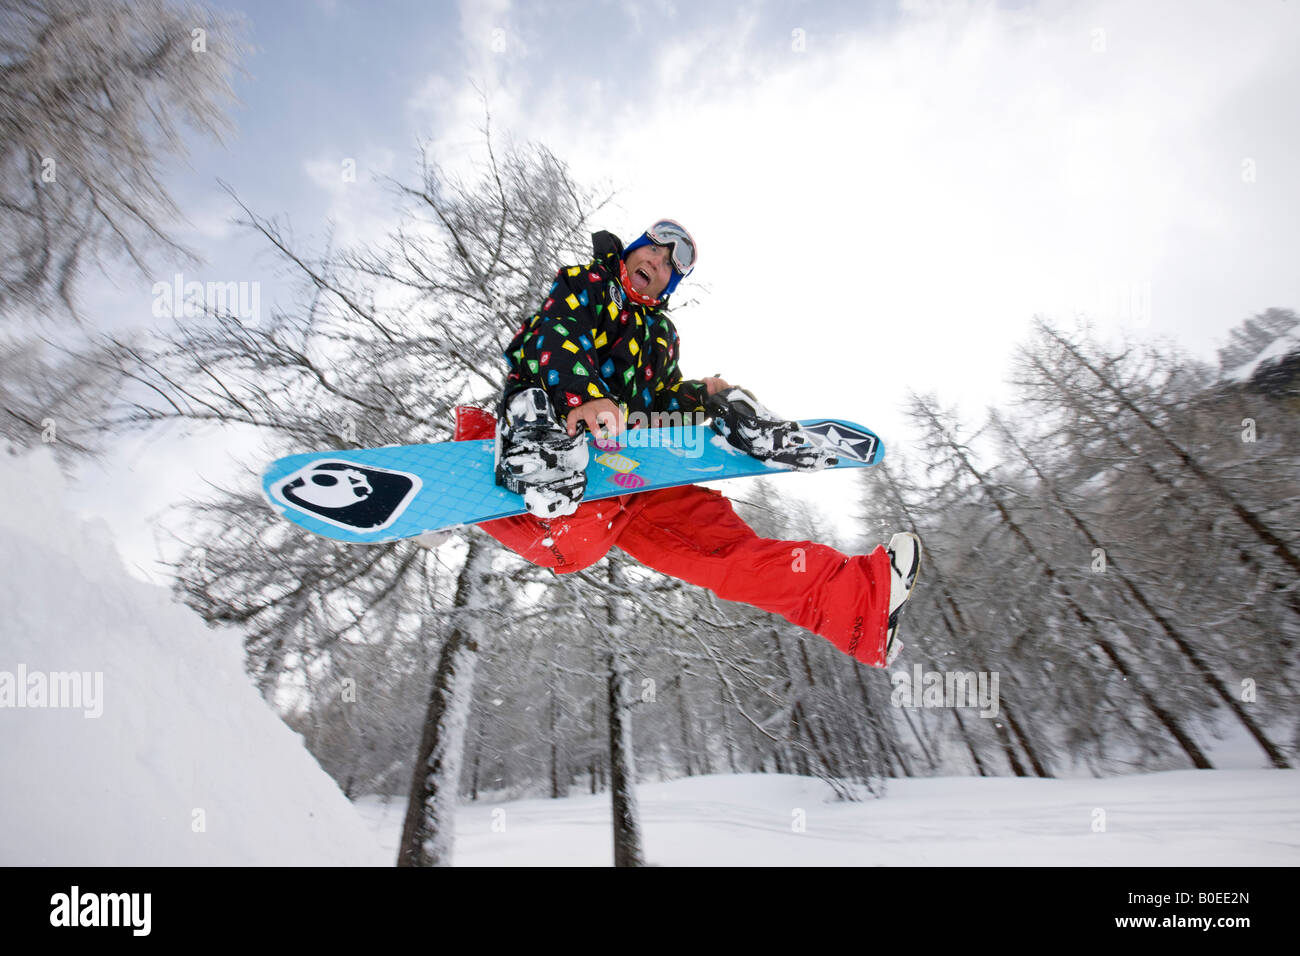 Snowboarder leaps from snow mound air guitar. - Stock Image